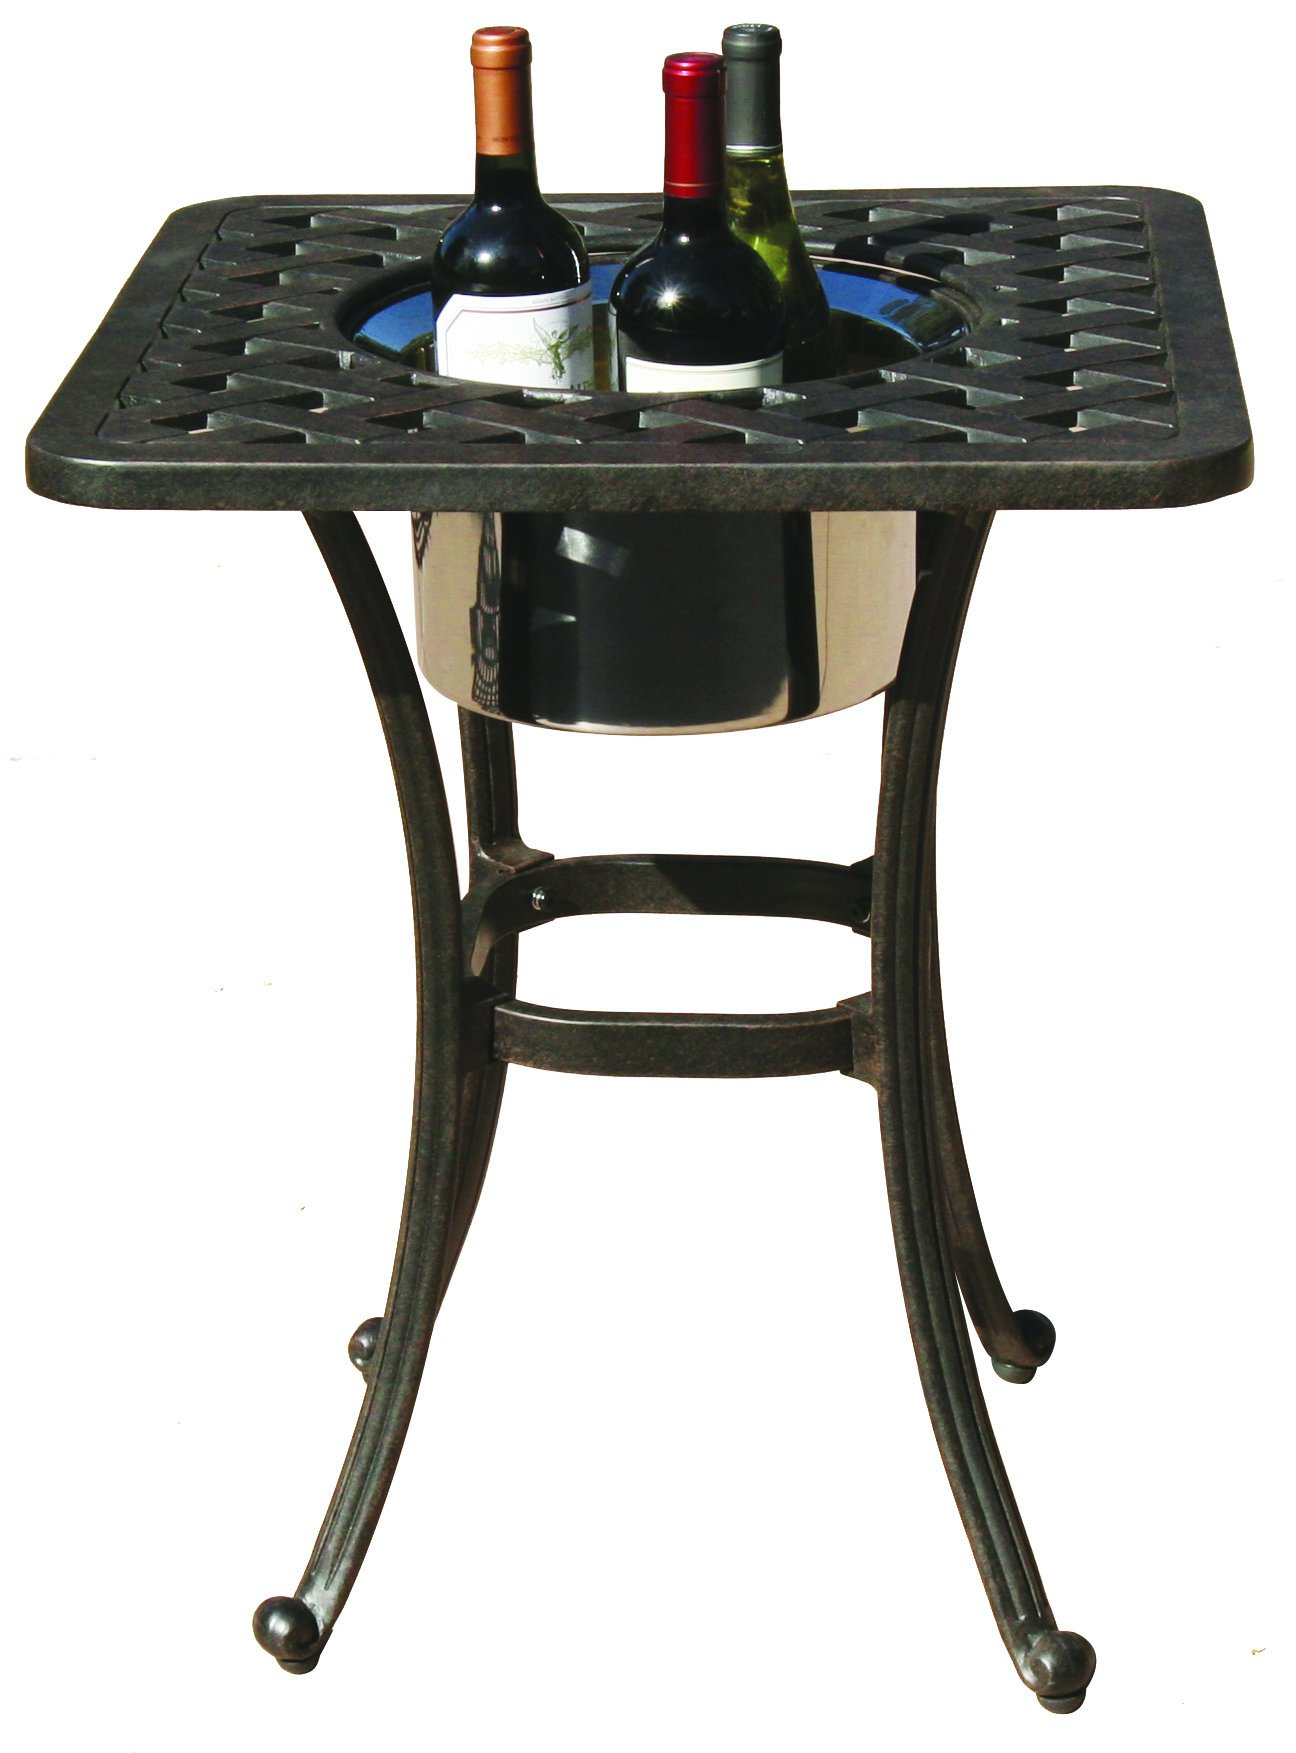 Darlee A/DL30-SQ Series 30 Side Table with Ice Bucket Insert, 21'' Round